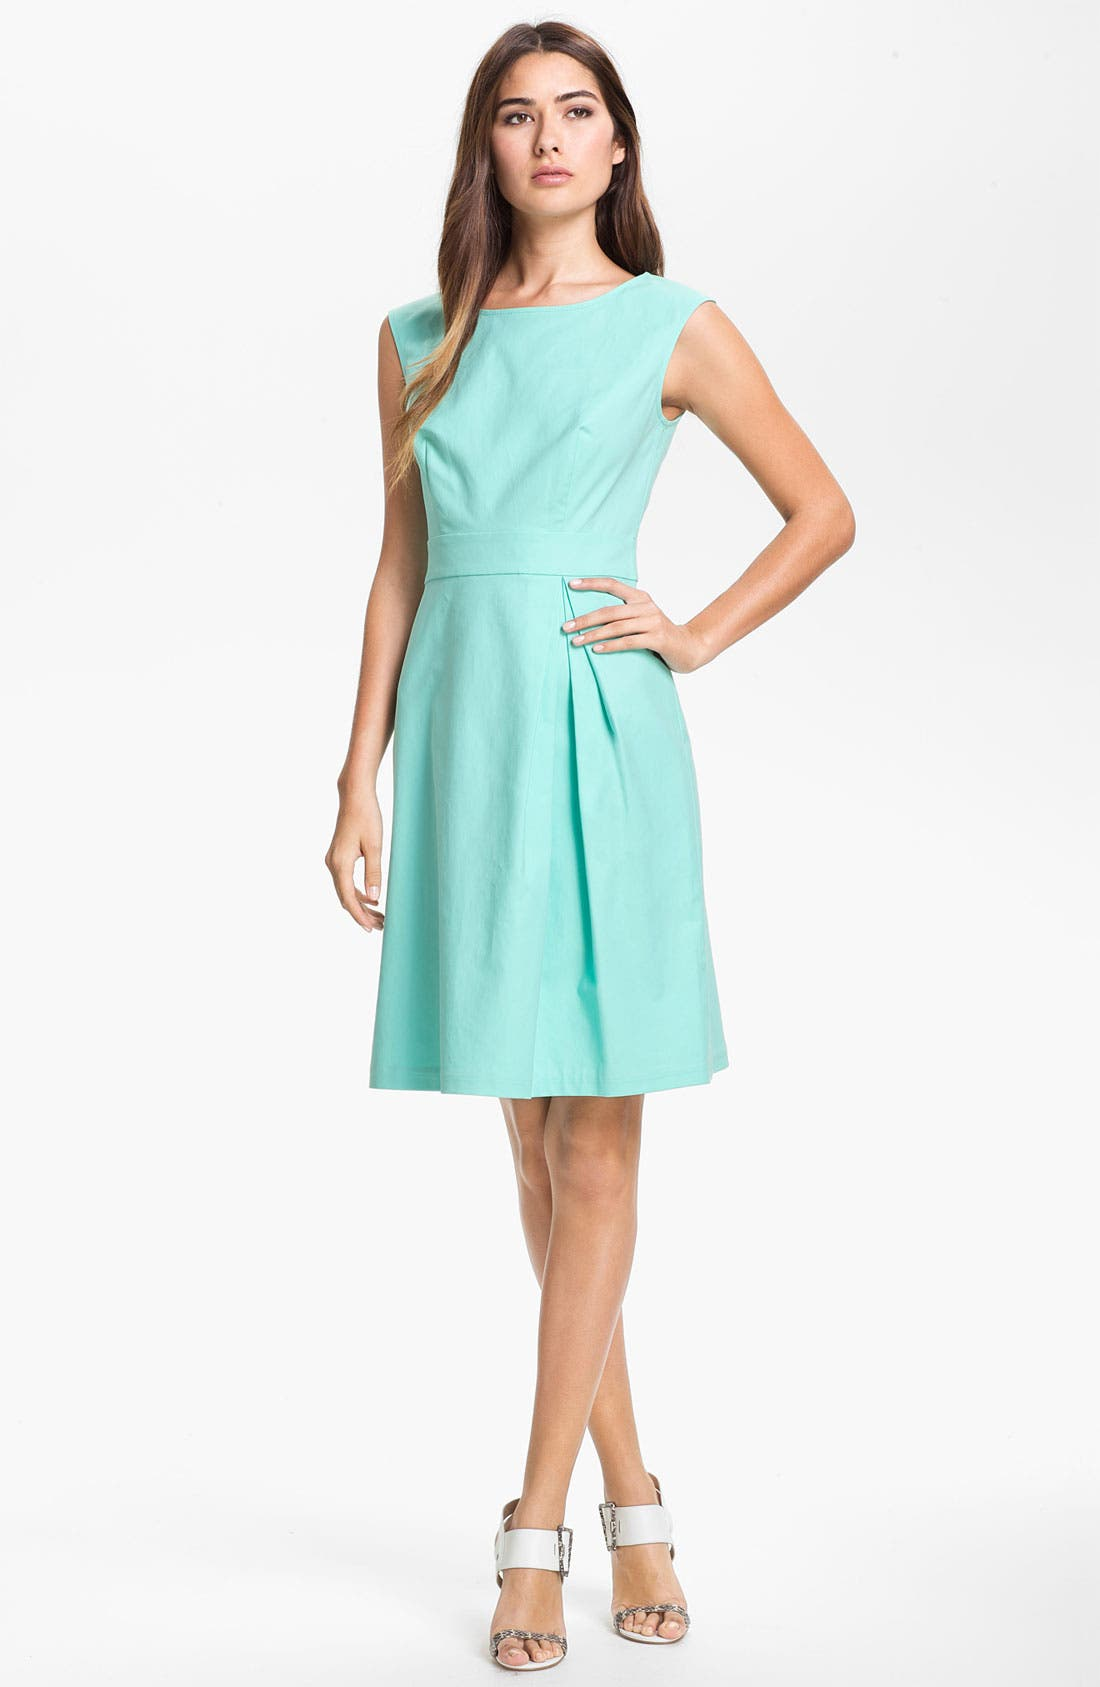 Alternate Image 1 Selected - Lafayette 148 New York 'Joy' Dress